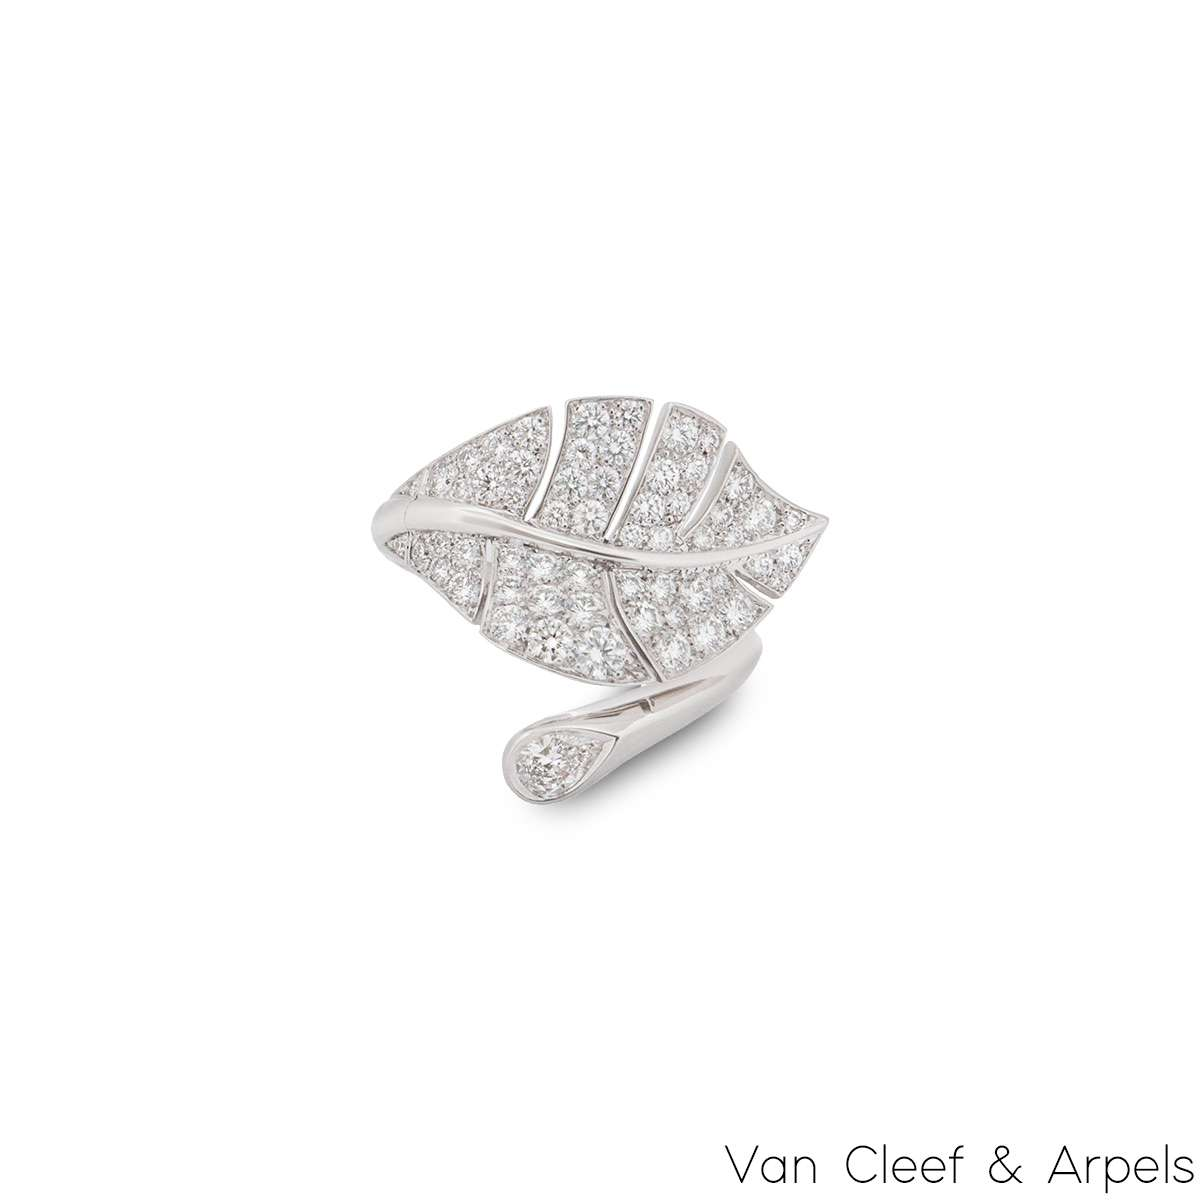 Van Cleef & Arpels White Gold Diamond Virevolte Ring